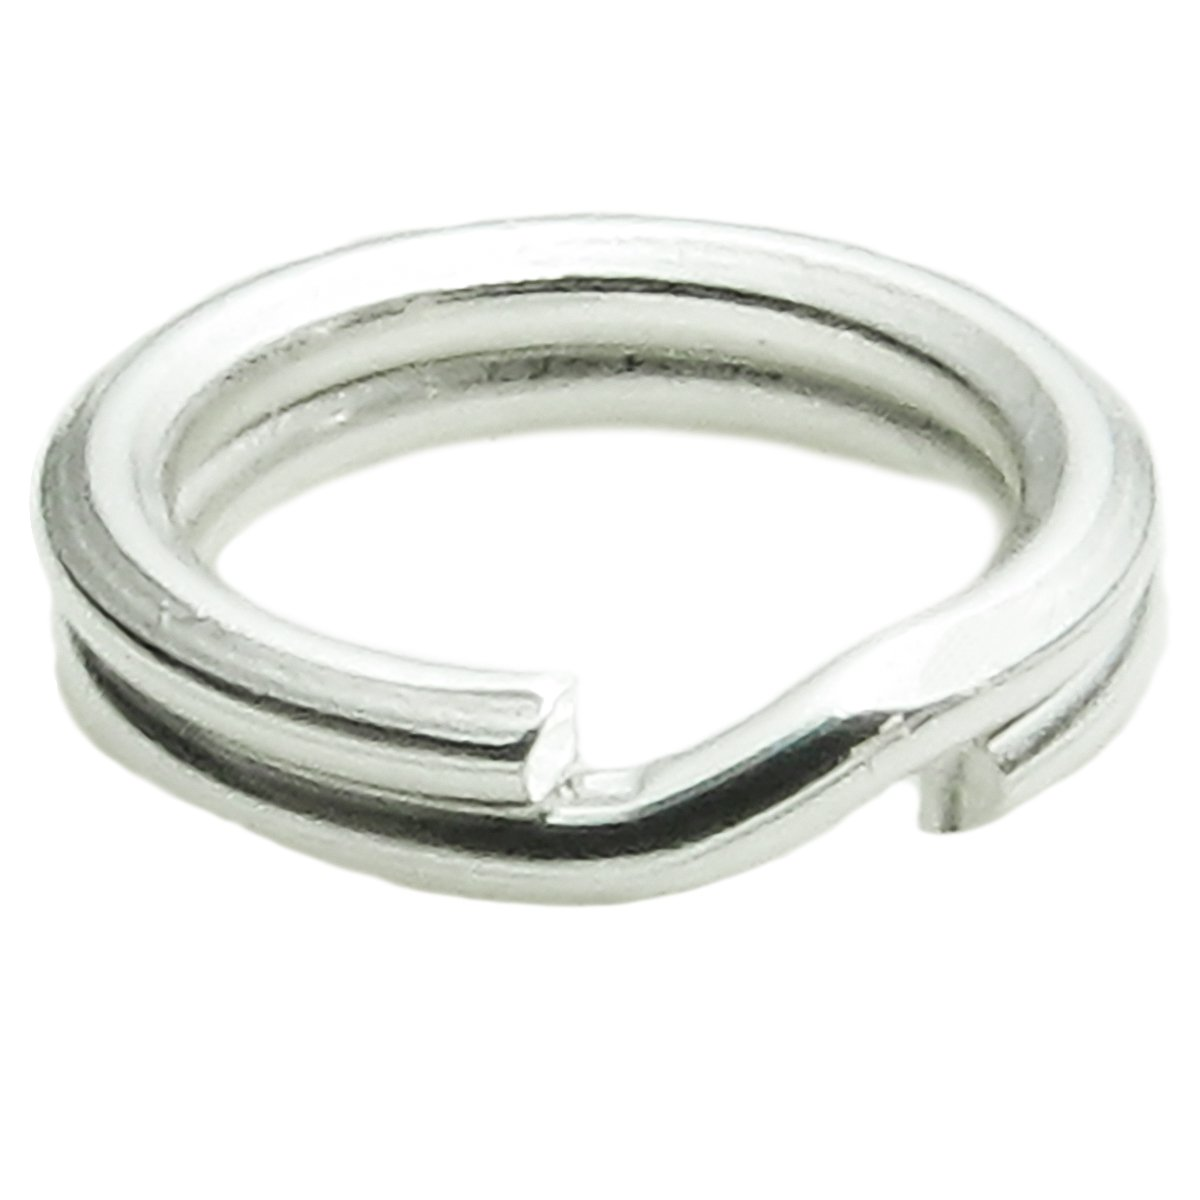 78d6881c4714e 20 pcs 925 Sterling Silver 6mm Round Split Jump Rings 22ga Gauge / 0.6mm  Wire Connector for Charm